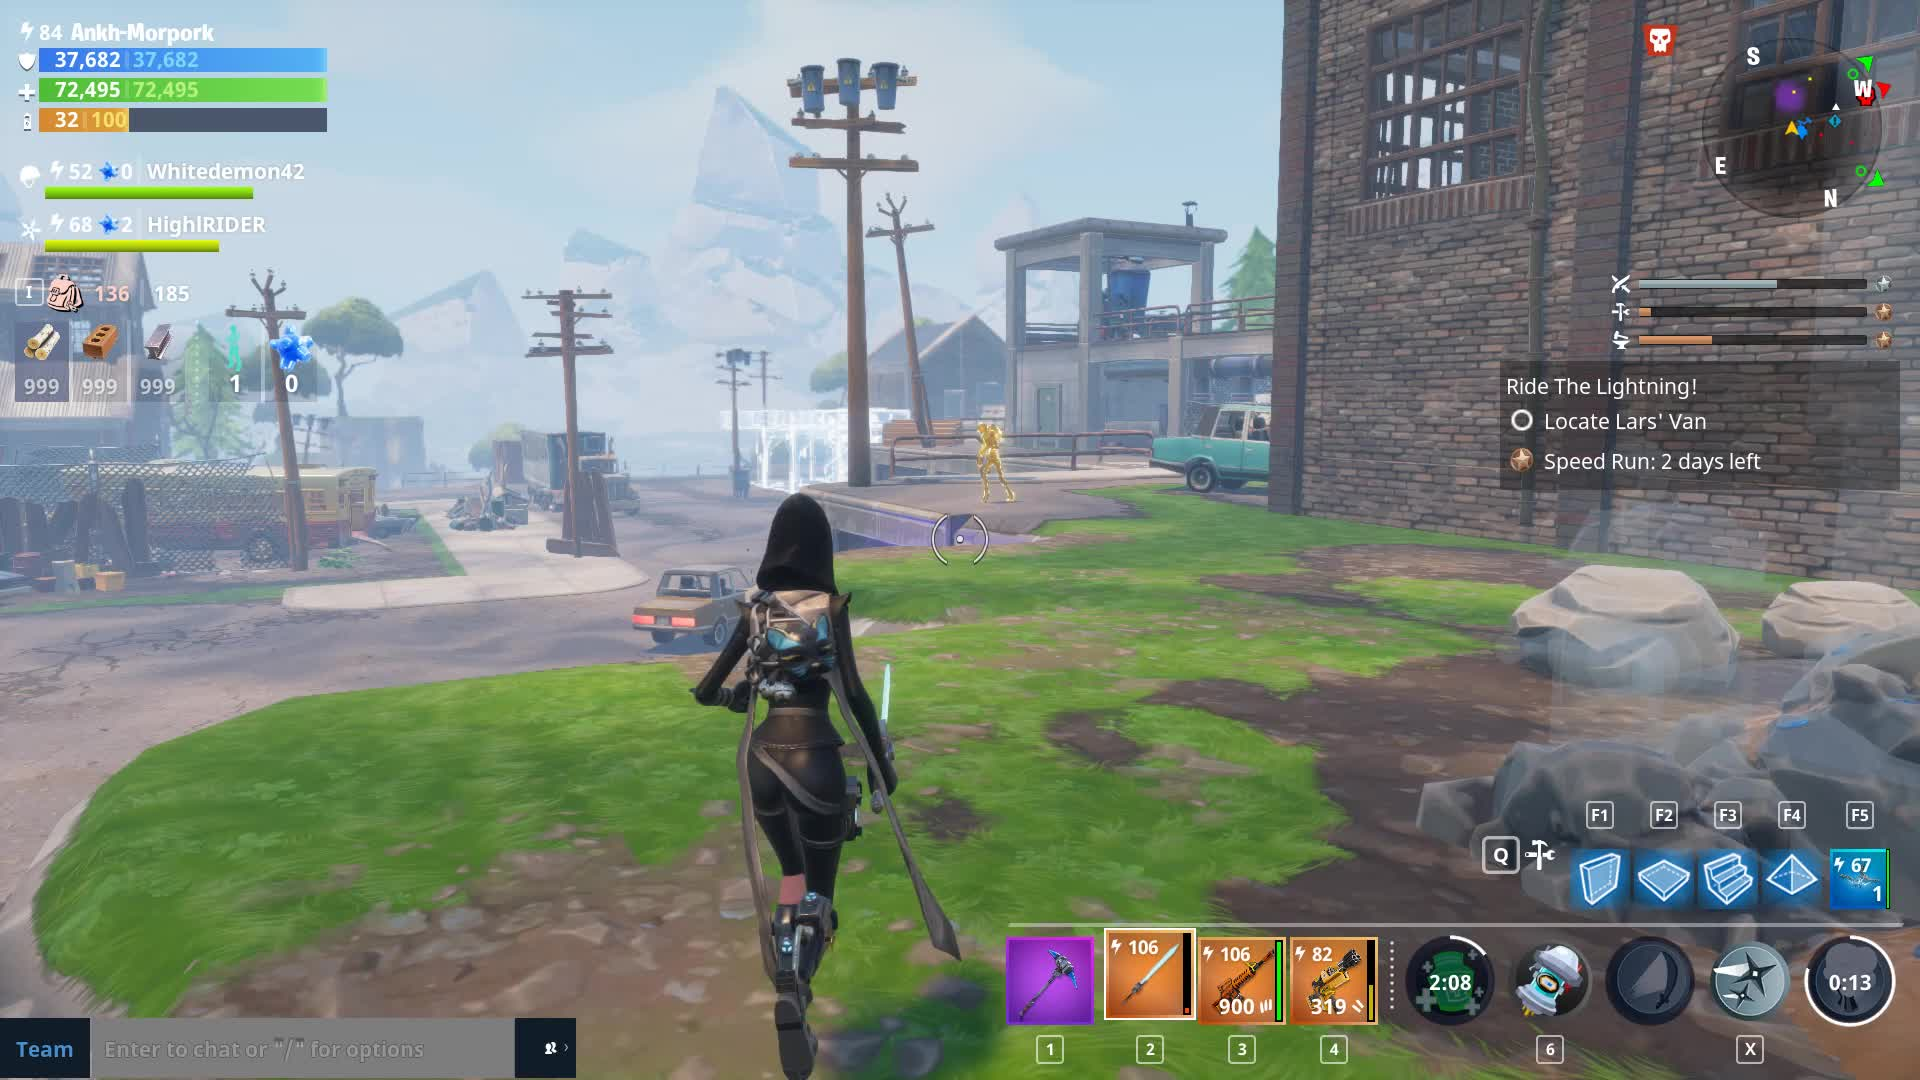 Fortnite - A New Game by Epic - Games - Quarter To Three Forums